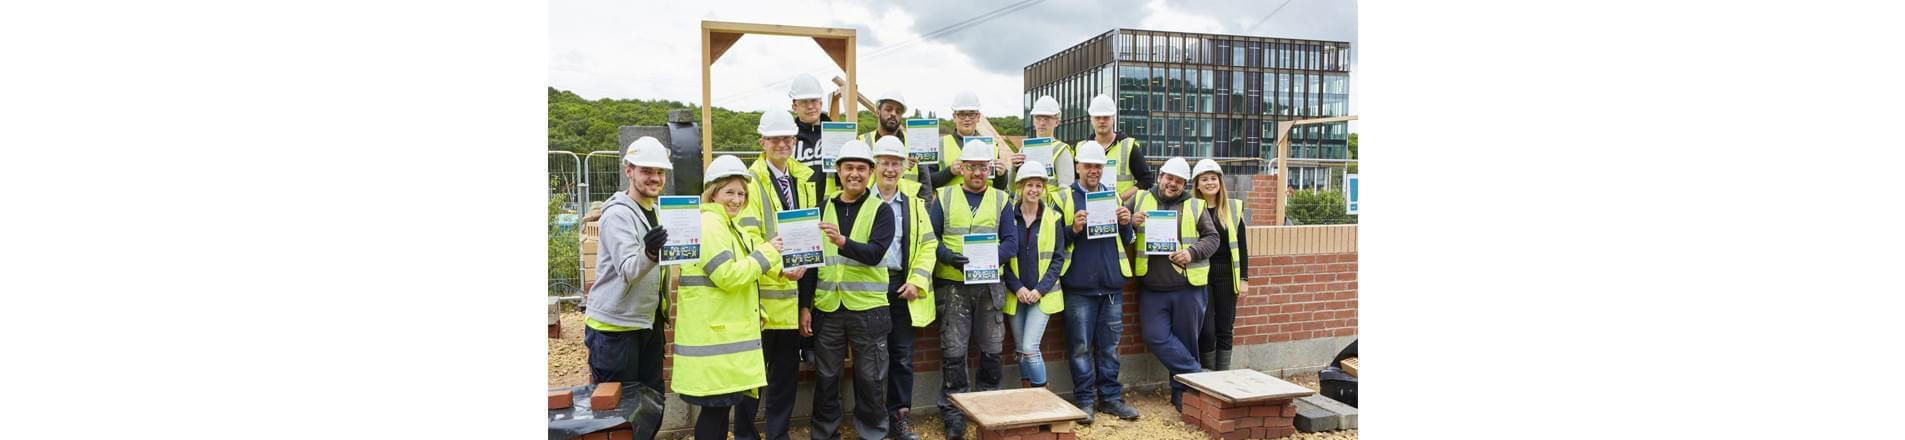 Wates Kirkstall Forge Trainees Hoding Certificates